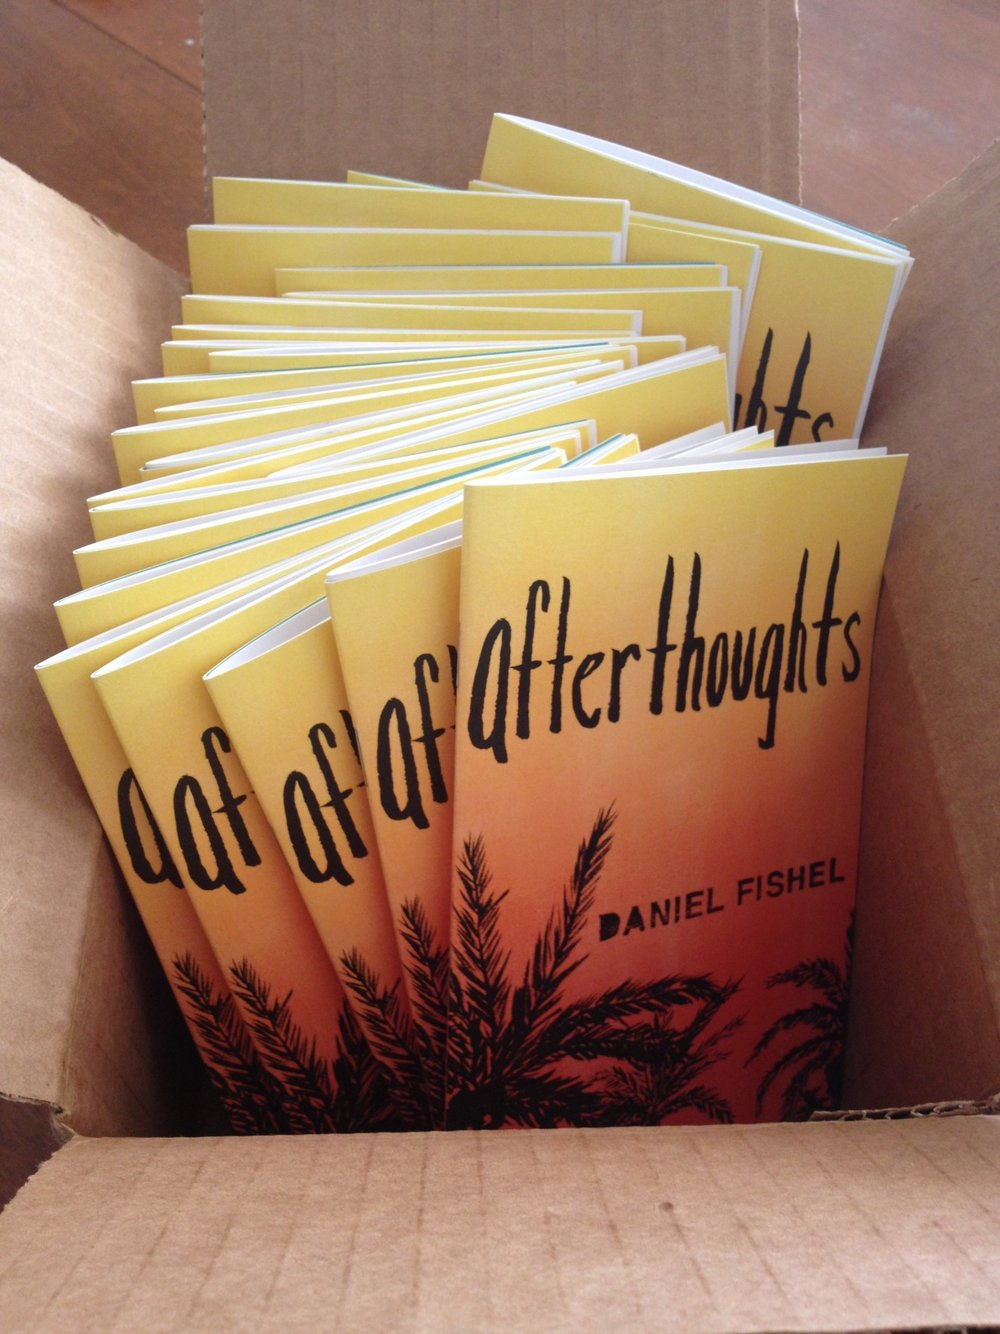 Happy Friday the 13th ya'll!         In honor of this unlucky,  I'm selling my Afterthoughts zine for $3.75 for today only.  Also, all international shipping is reduced.         http://ofishel.bigcartel.com/product/afterthoughts-zine       http://ofishel.bigcartel.com/product/afterthoughts-zine http://ofishel.bigcartel.com/product/afterthoughts-zine       http://ofishel.bigcartel.com/product/afterthoughts-zine           http://ofishel.bigcartel.com/product/afterthoughts-zine       http://ofishel.bigcartel.com/product/afterthoughts-zine http://ofishel.bigcartel.com/product/afterthoughts-zine       http://ofishel.bigcartel.com/product/afterthoughts-zine